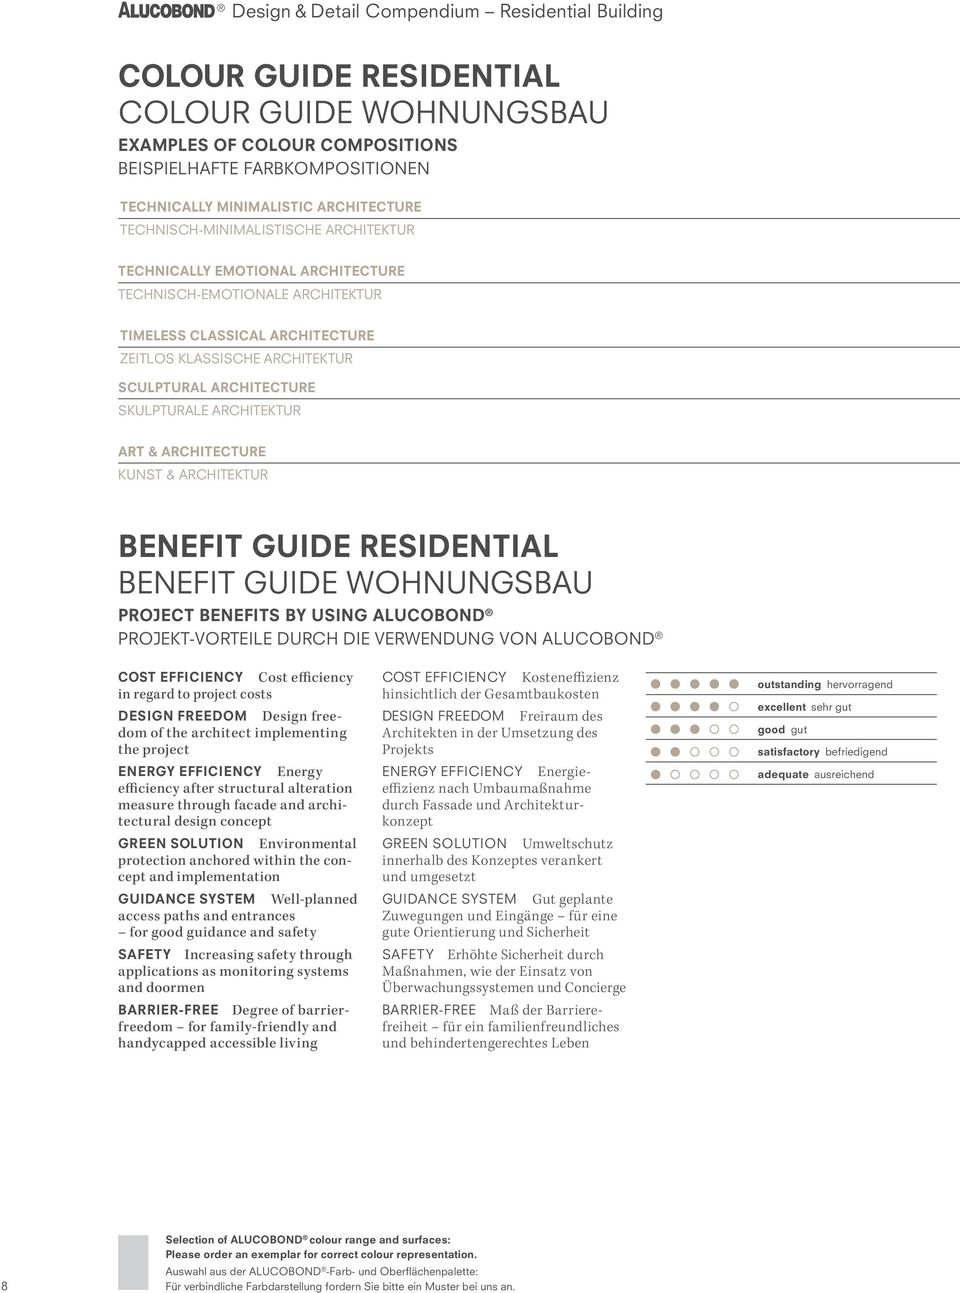 SKULPTURALE ARCHITEKTUR ART & ARCHITECTURE KUNST & ARCHITEKTUR BENEFIT GUIDE RESIDENTIAL BENEFIT GUIDE WOHNUNGSBAU PROJECT BENEFITS BY USING ALUCOBOND PROJEKT-VORTEILE DURCH DIE VERWENDUNG VON